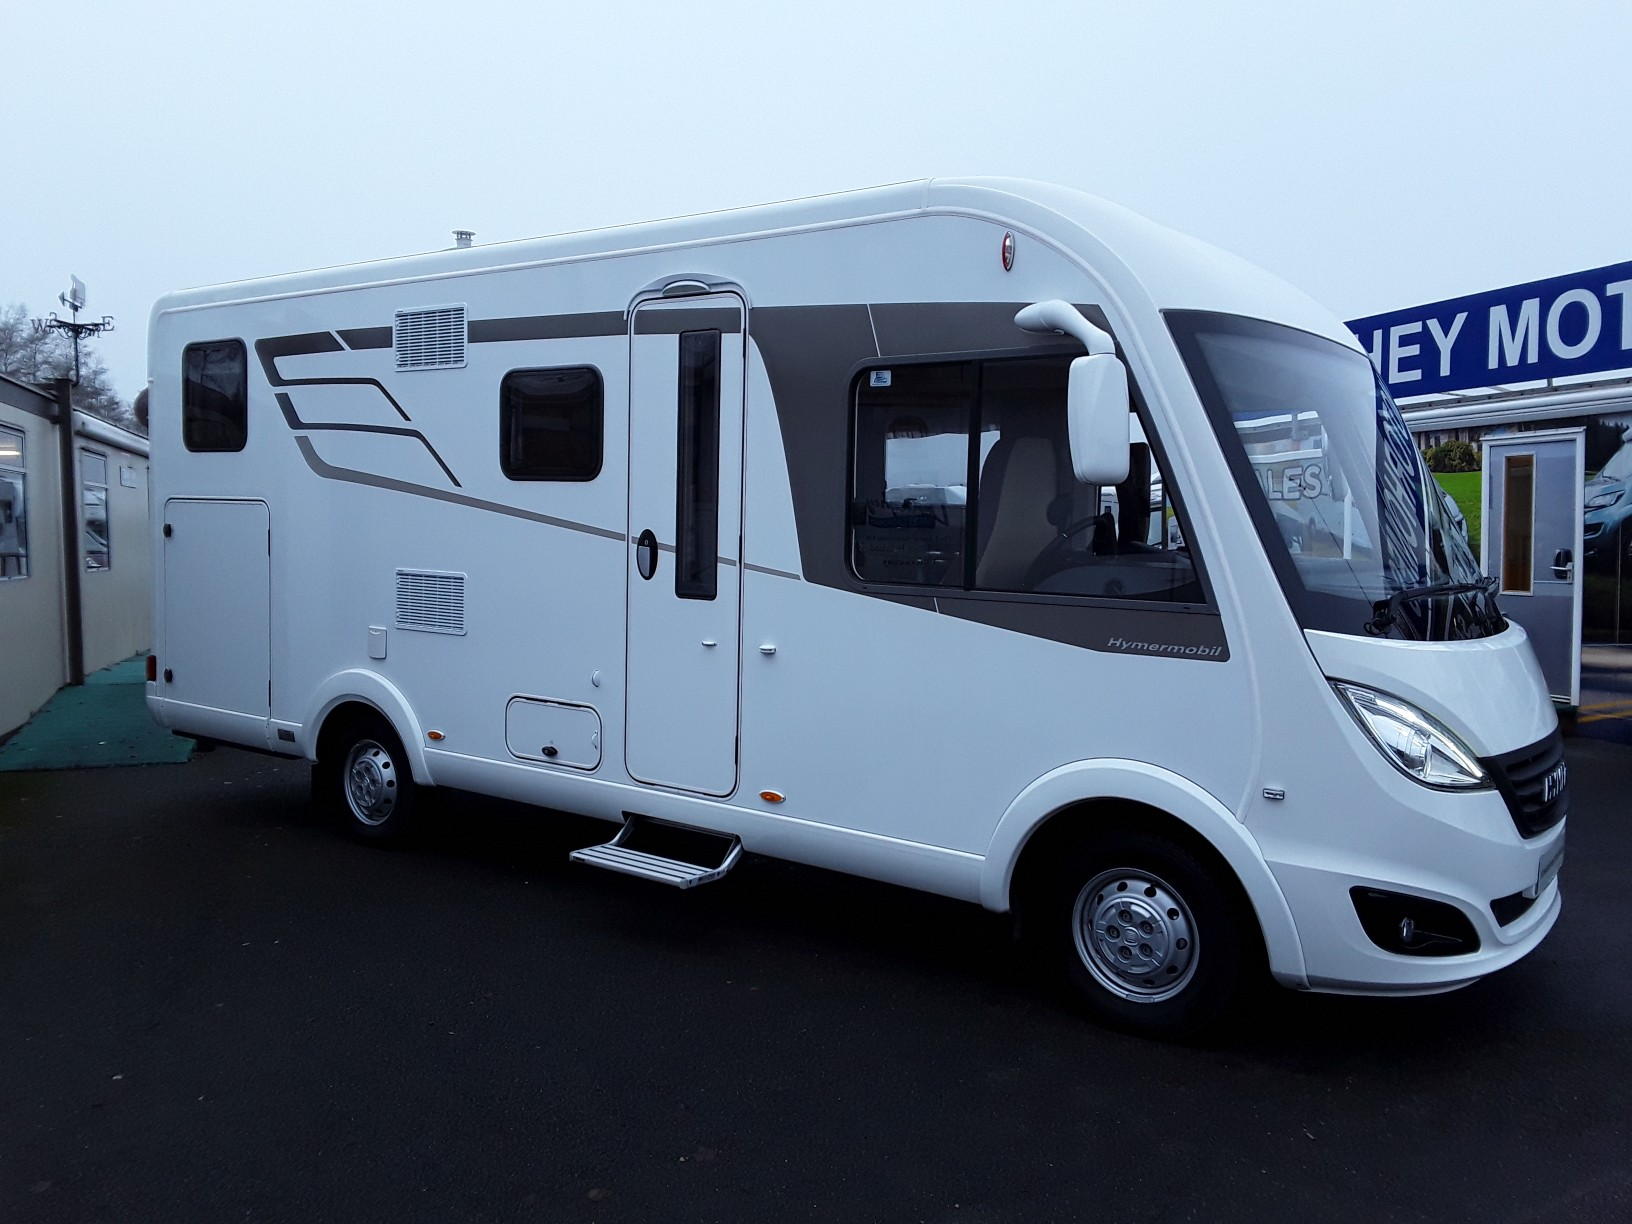 fiat ducato hymer bdl 588 donaghey motorhomes. Black Bedroom Furniture Sets. Home Design Ideas